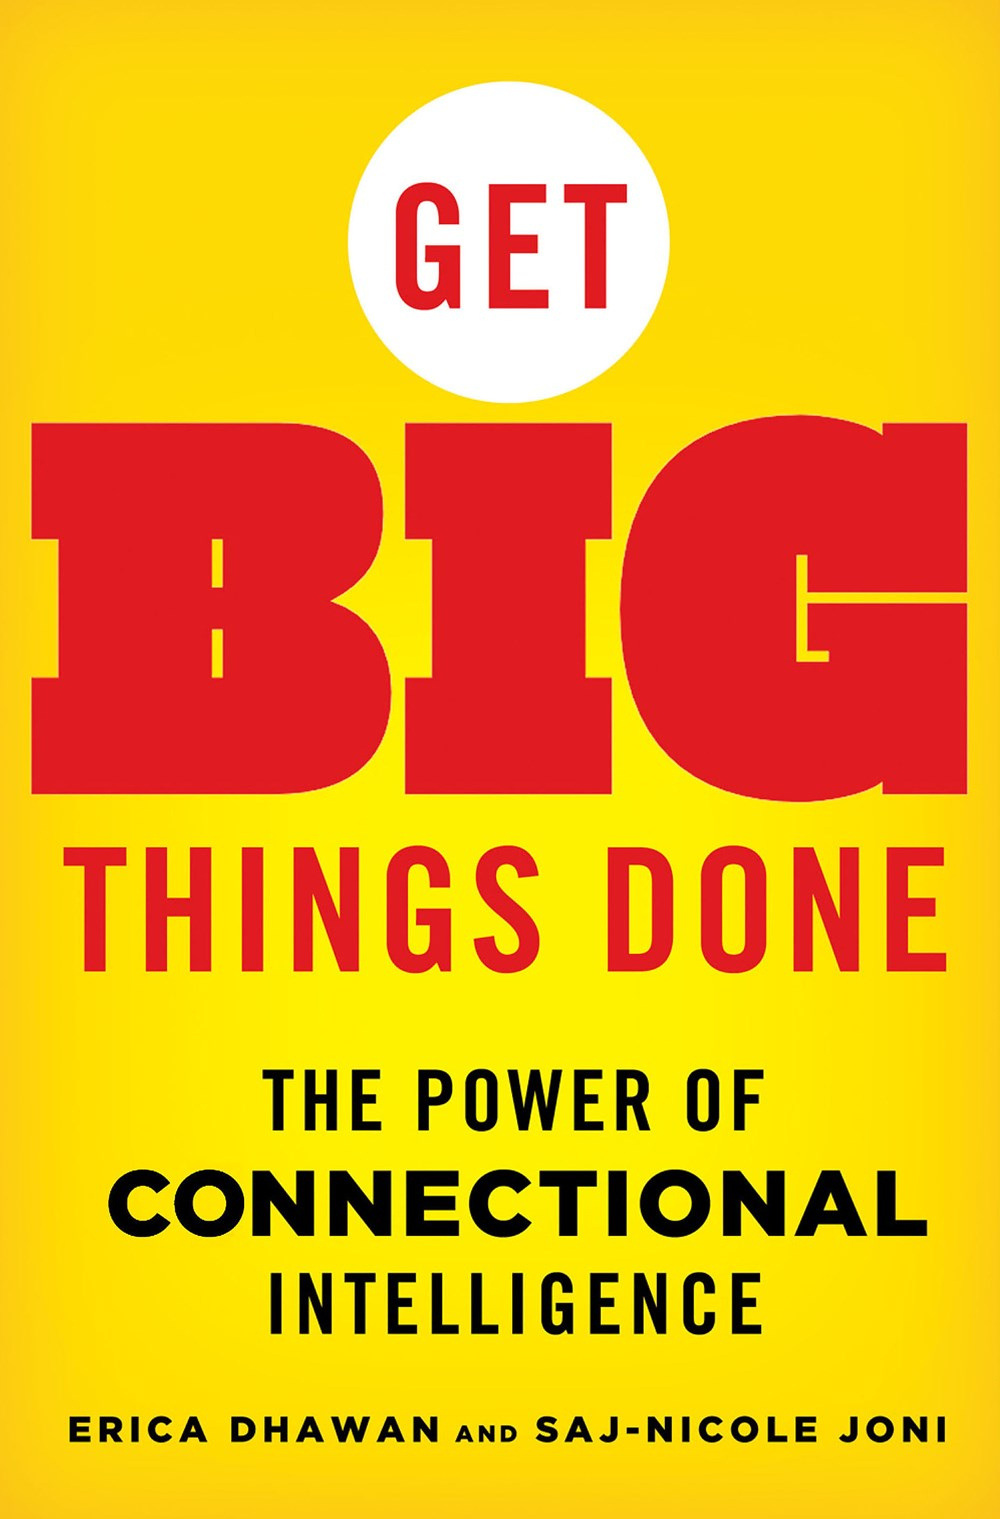 Get Big Things Done The Power of Connectional Intelligence